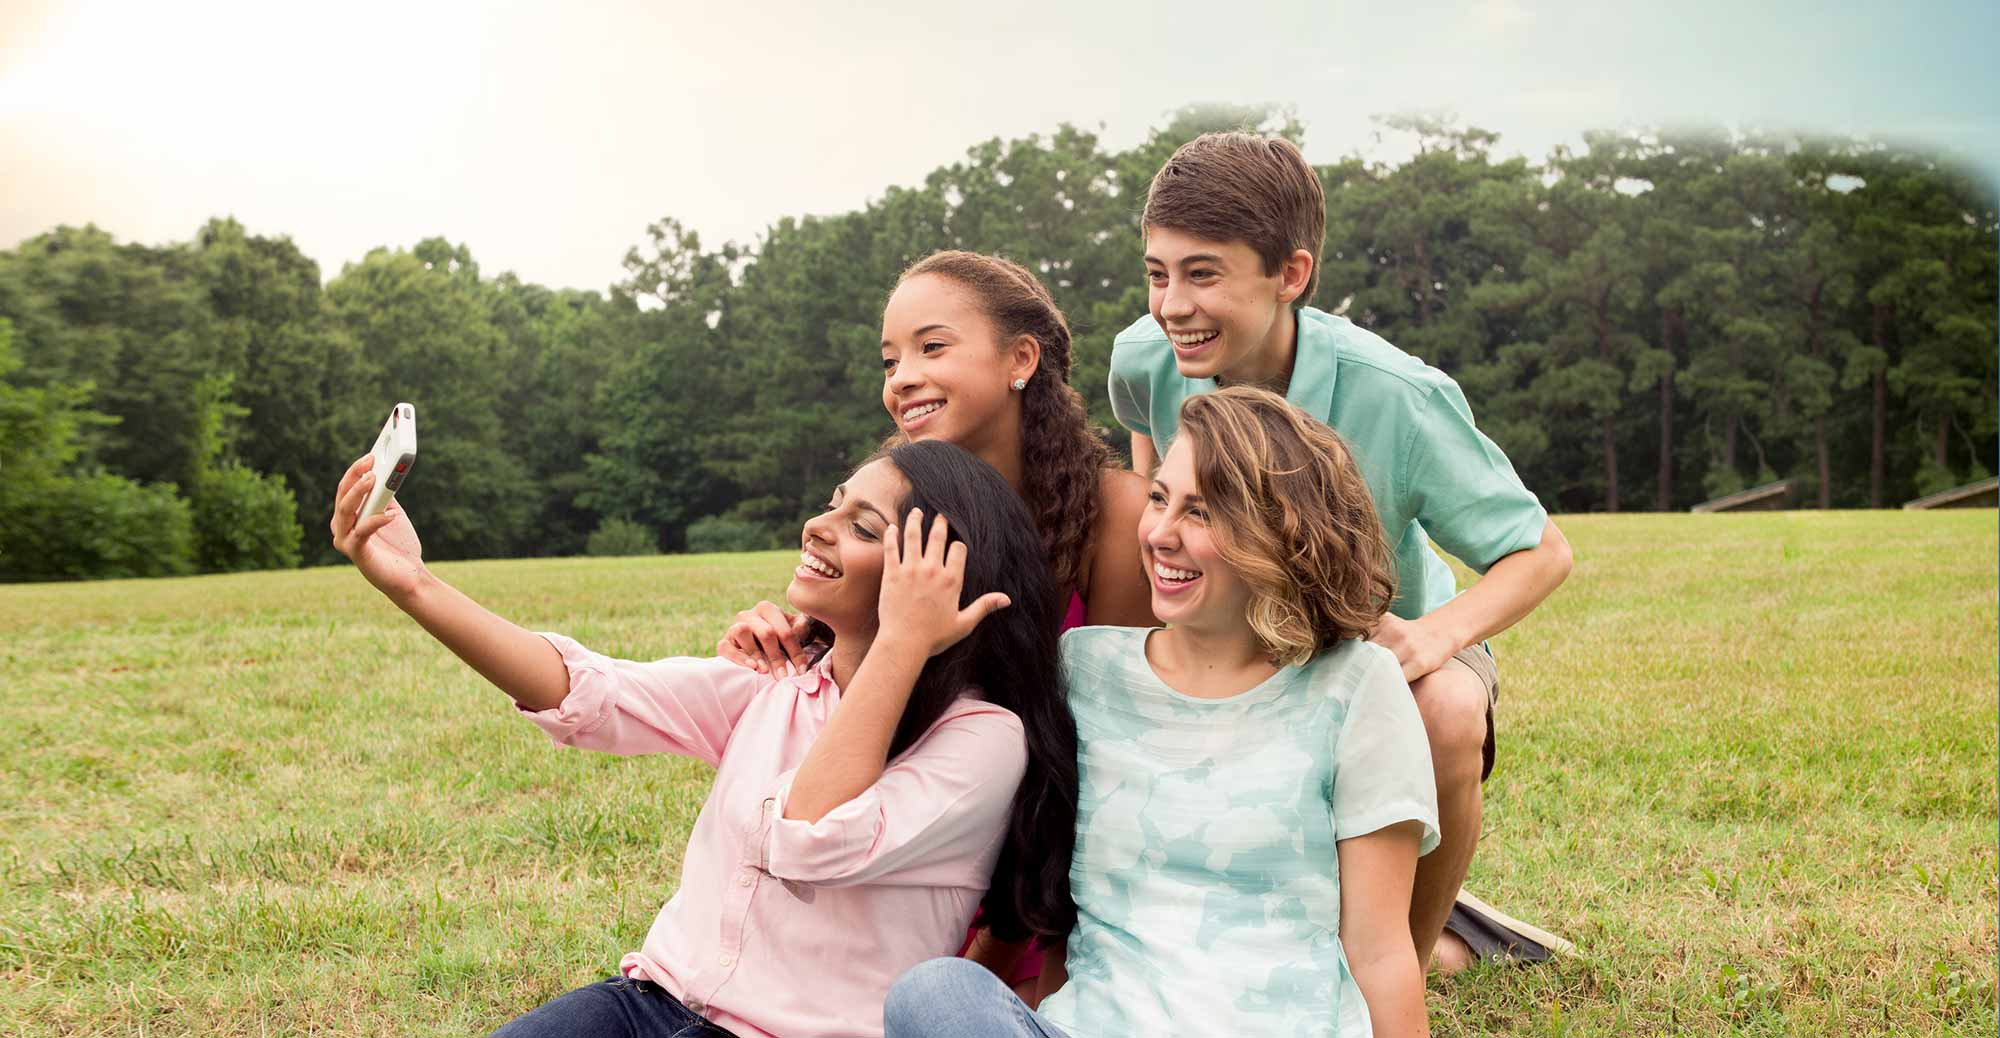 Vitkus Orthodontics Geneva NY Background Image of Kids